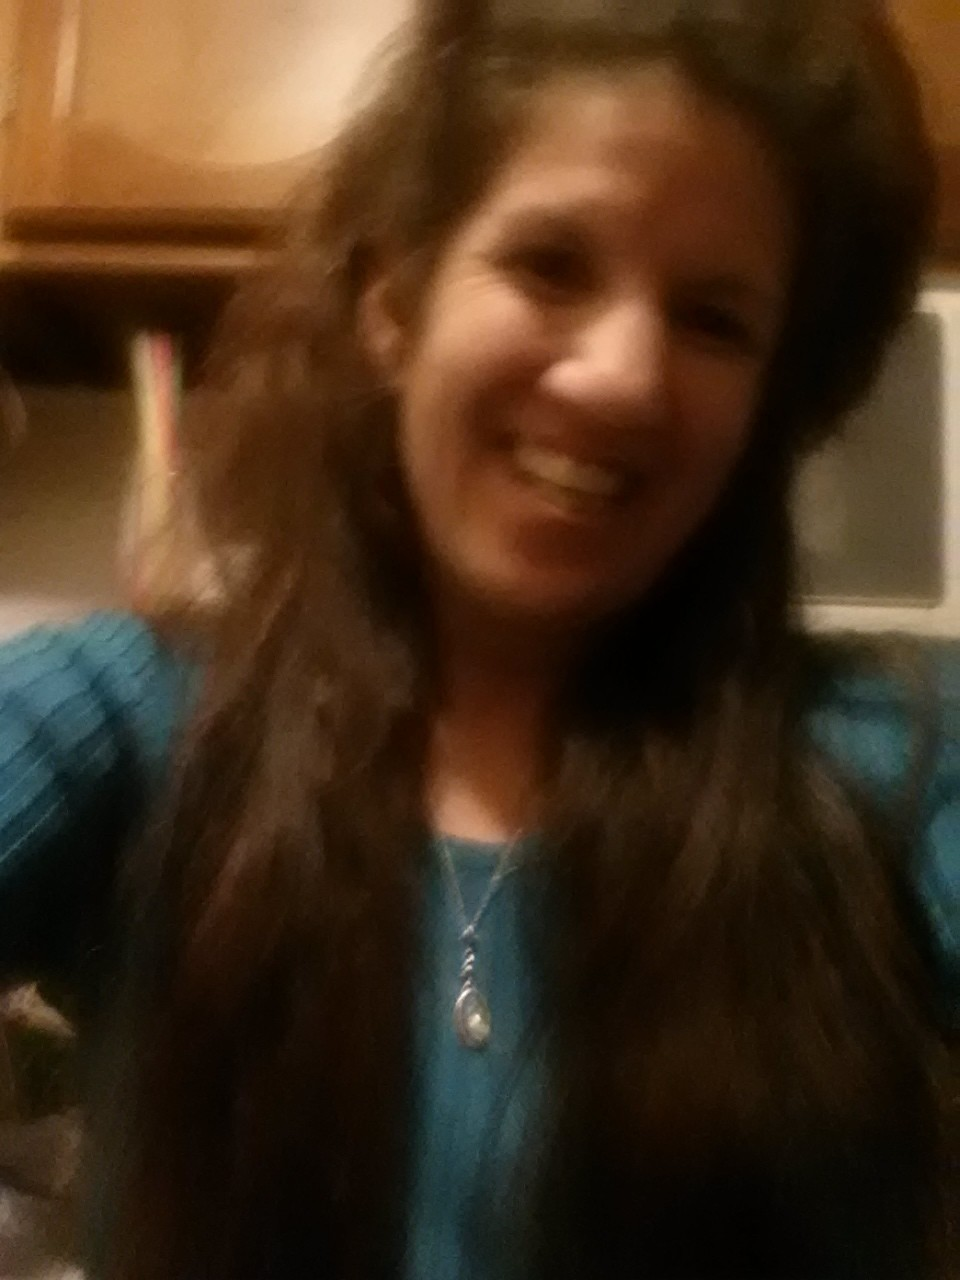 This is MarlenaNobles373@gmail.com when she smiles.